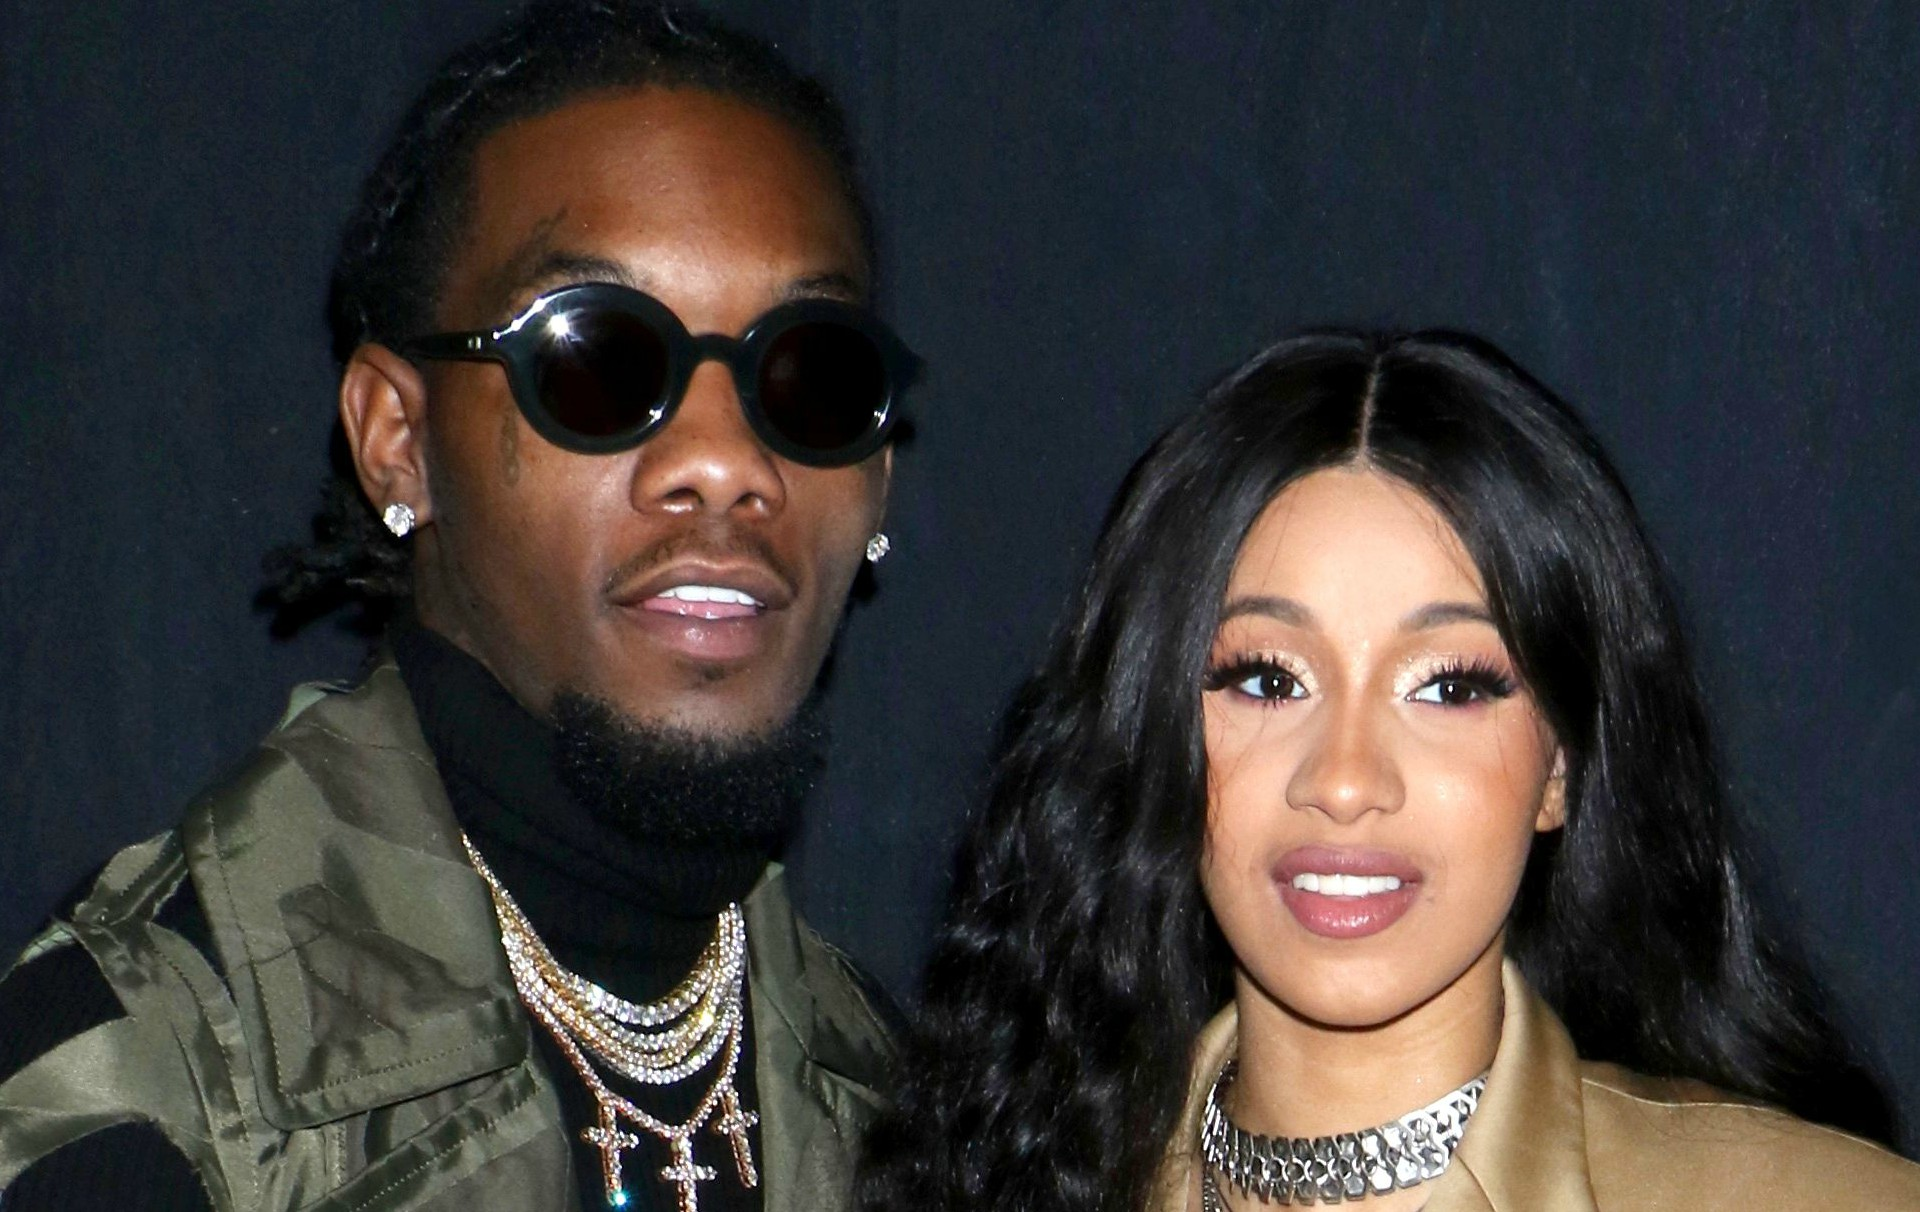 Cardi B confirms split from offset